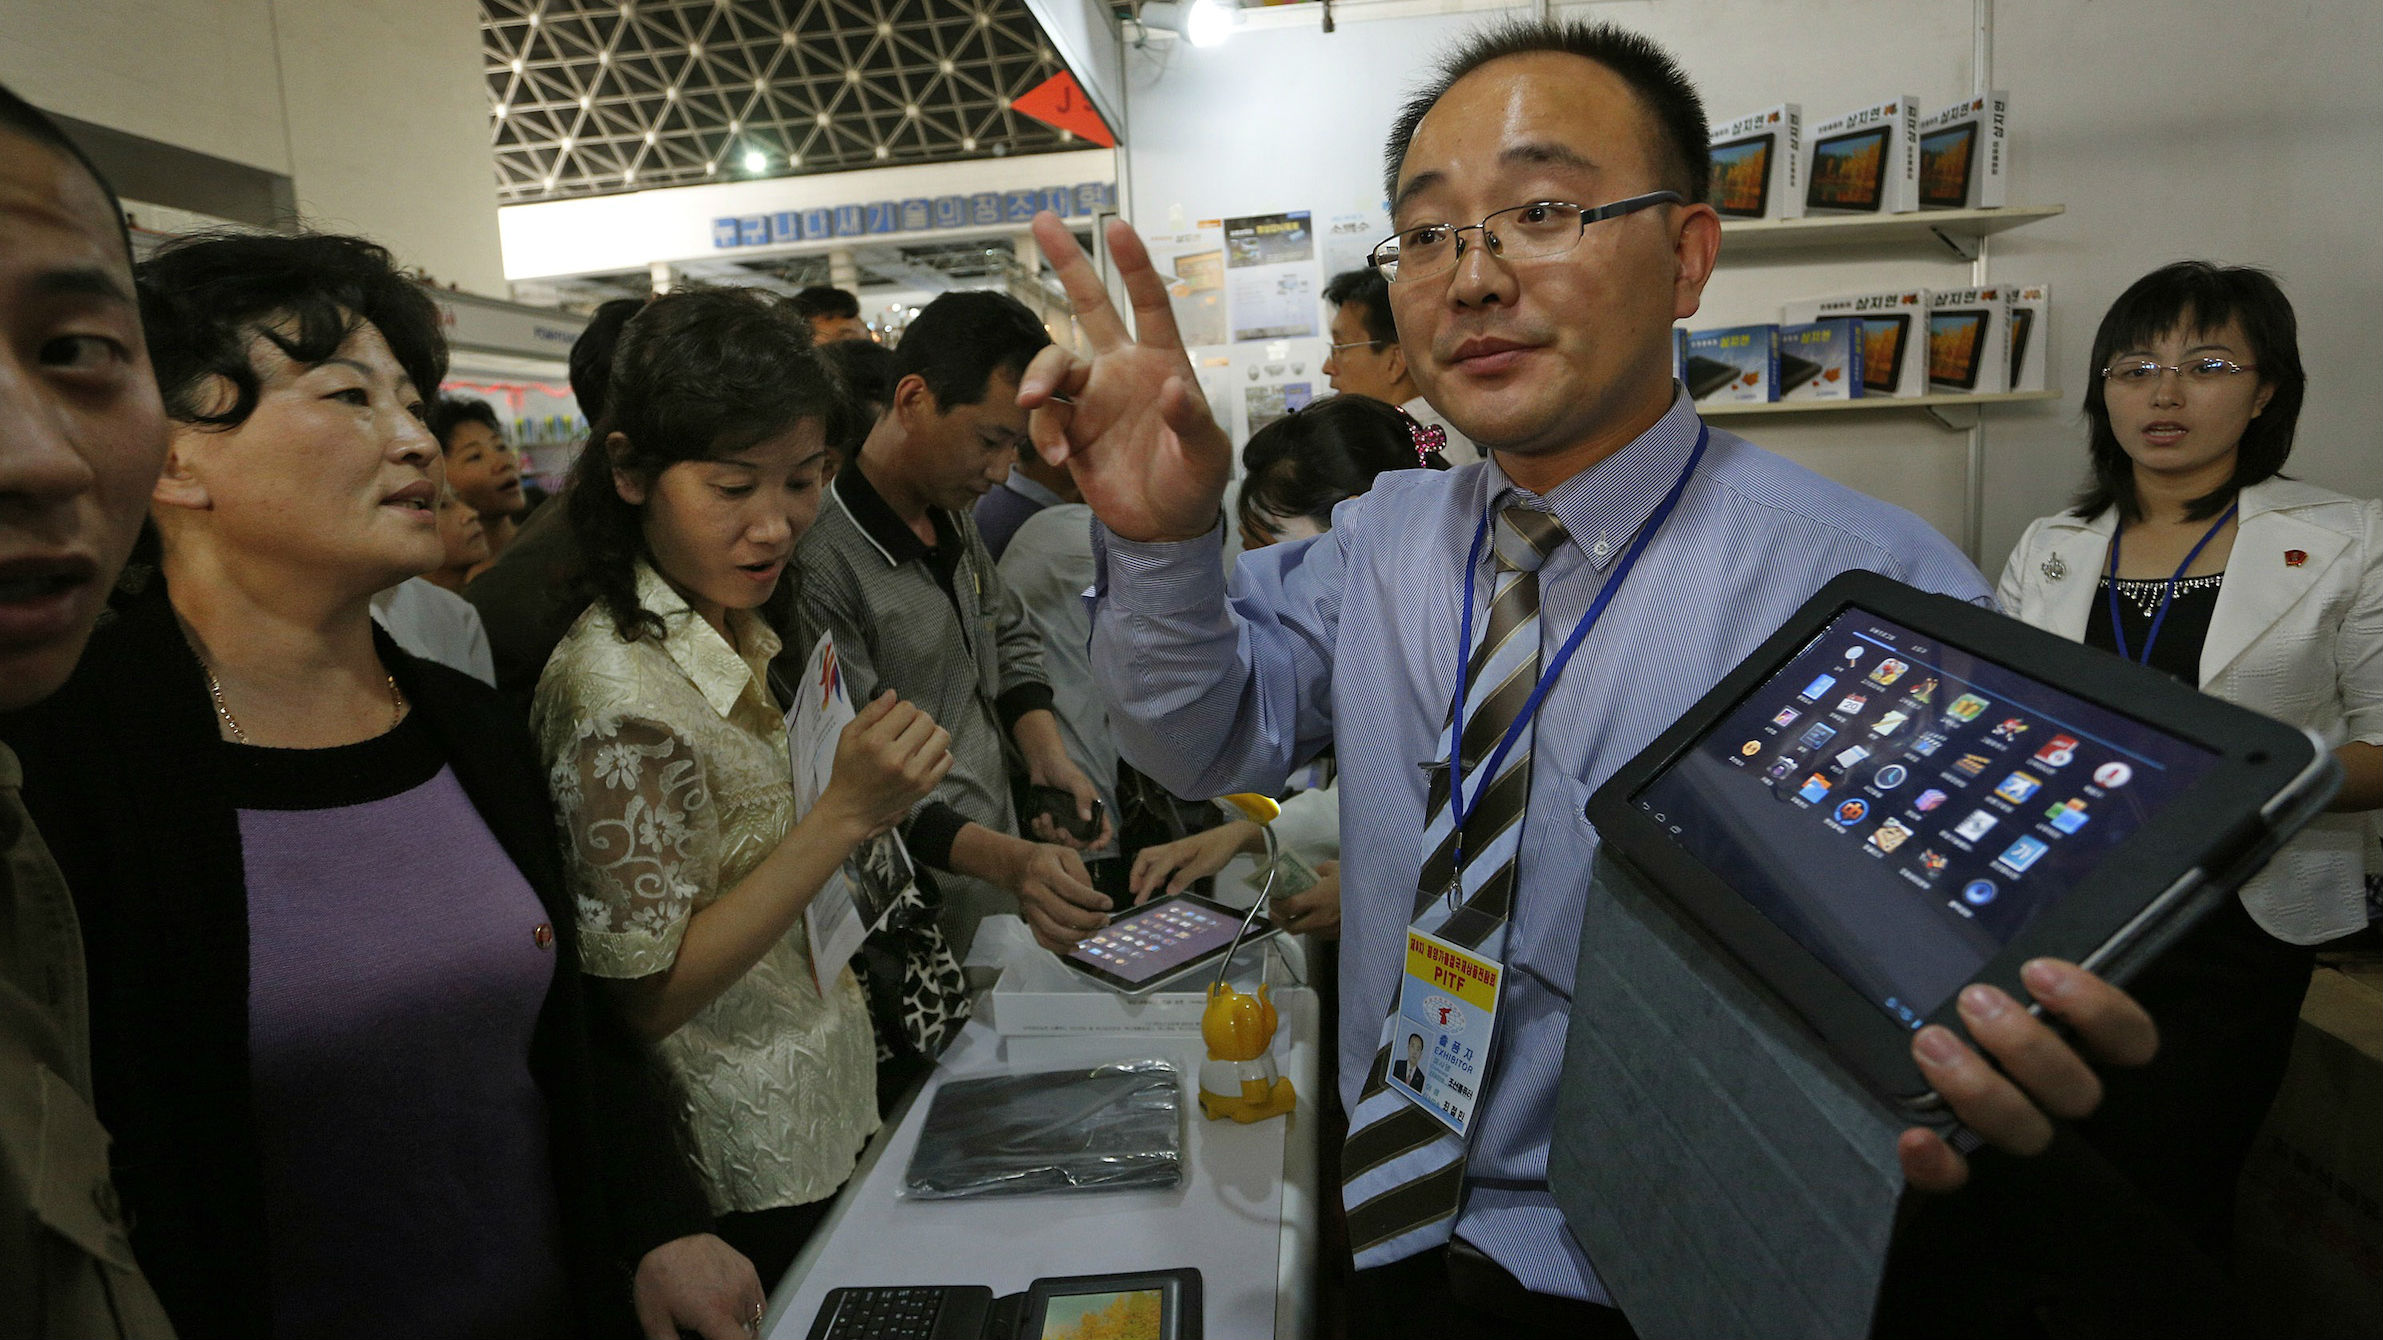 North Koreans looks at a new tablet product made by North Korea at a trade fair at the Three Revolution Exhibition Hall in Pyongyang Tuesday, Sept. 25, 2012.